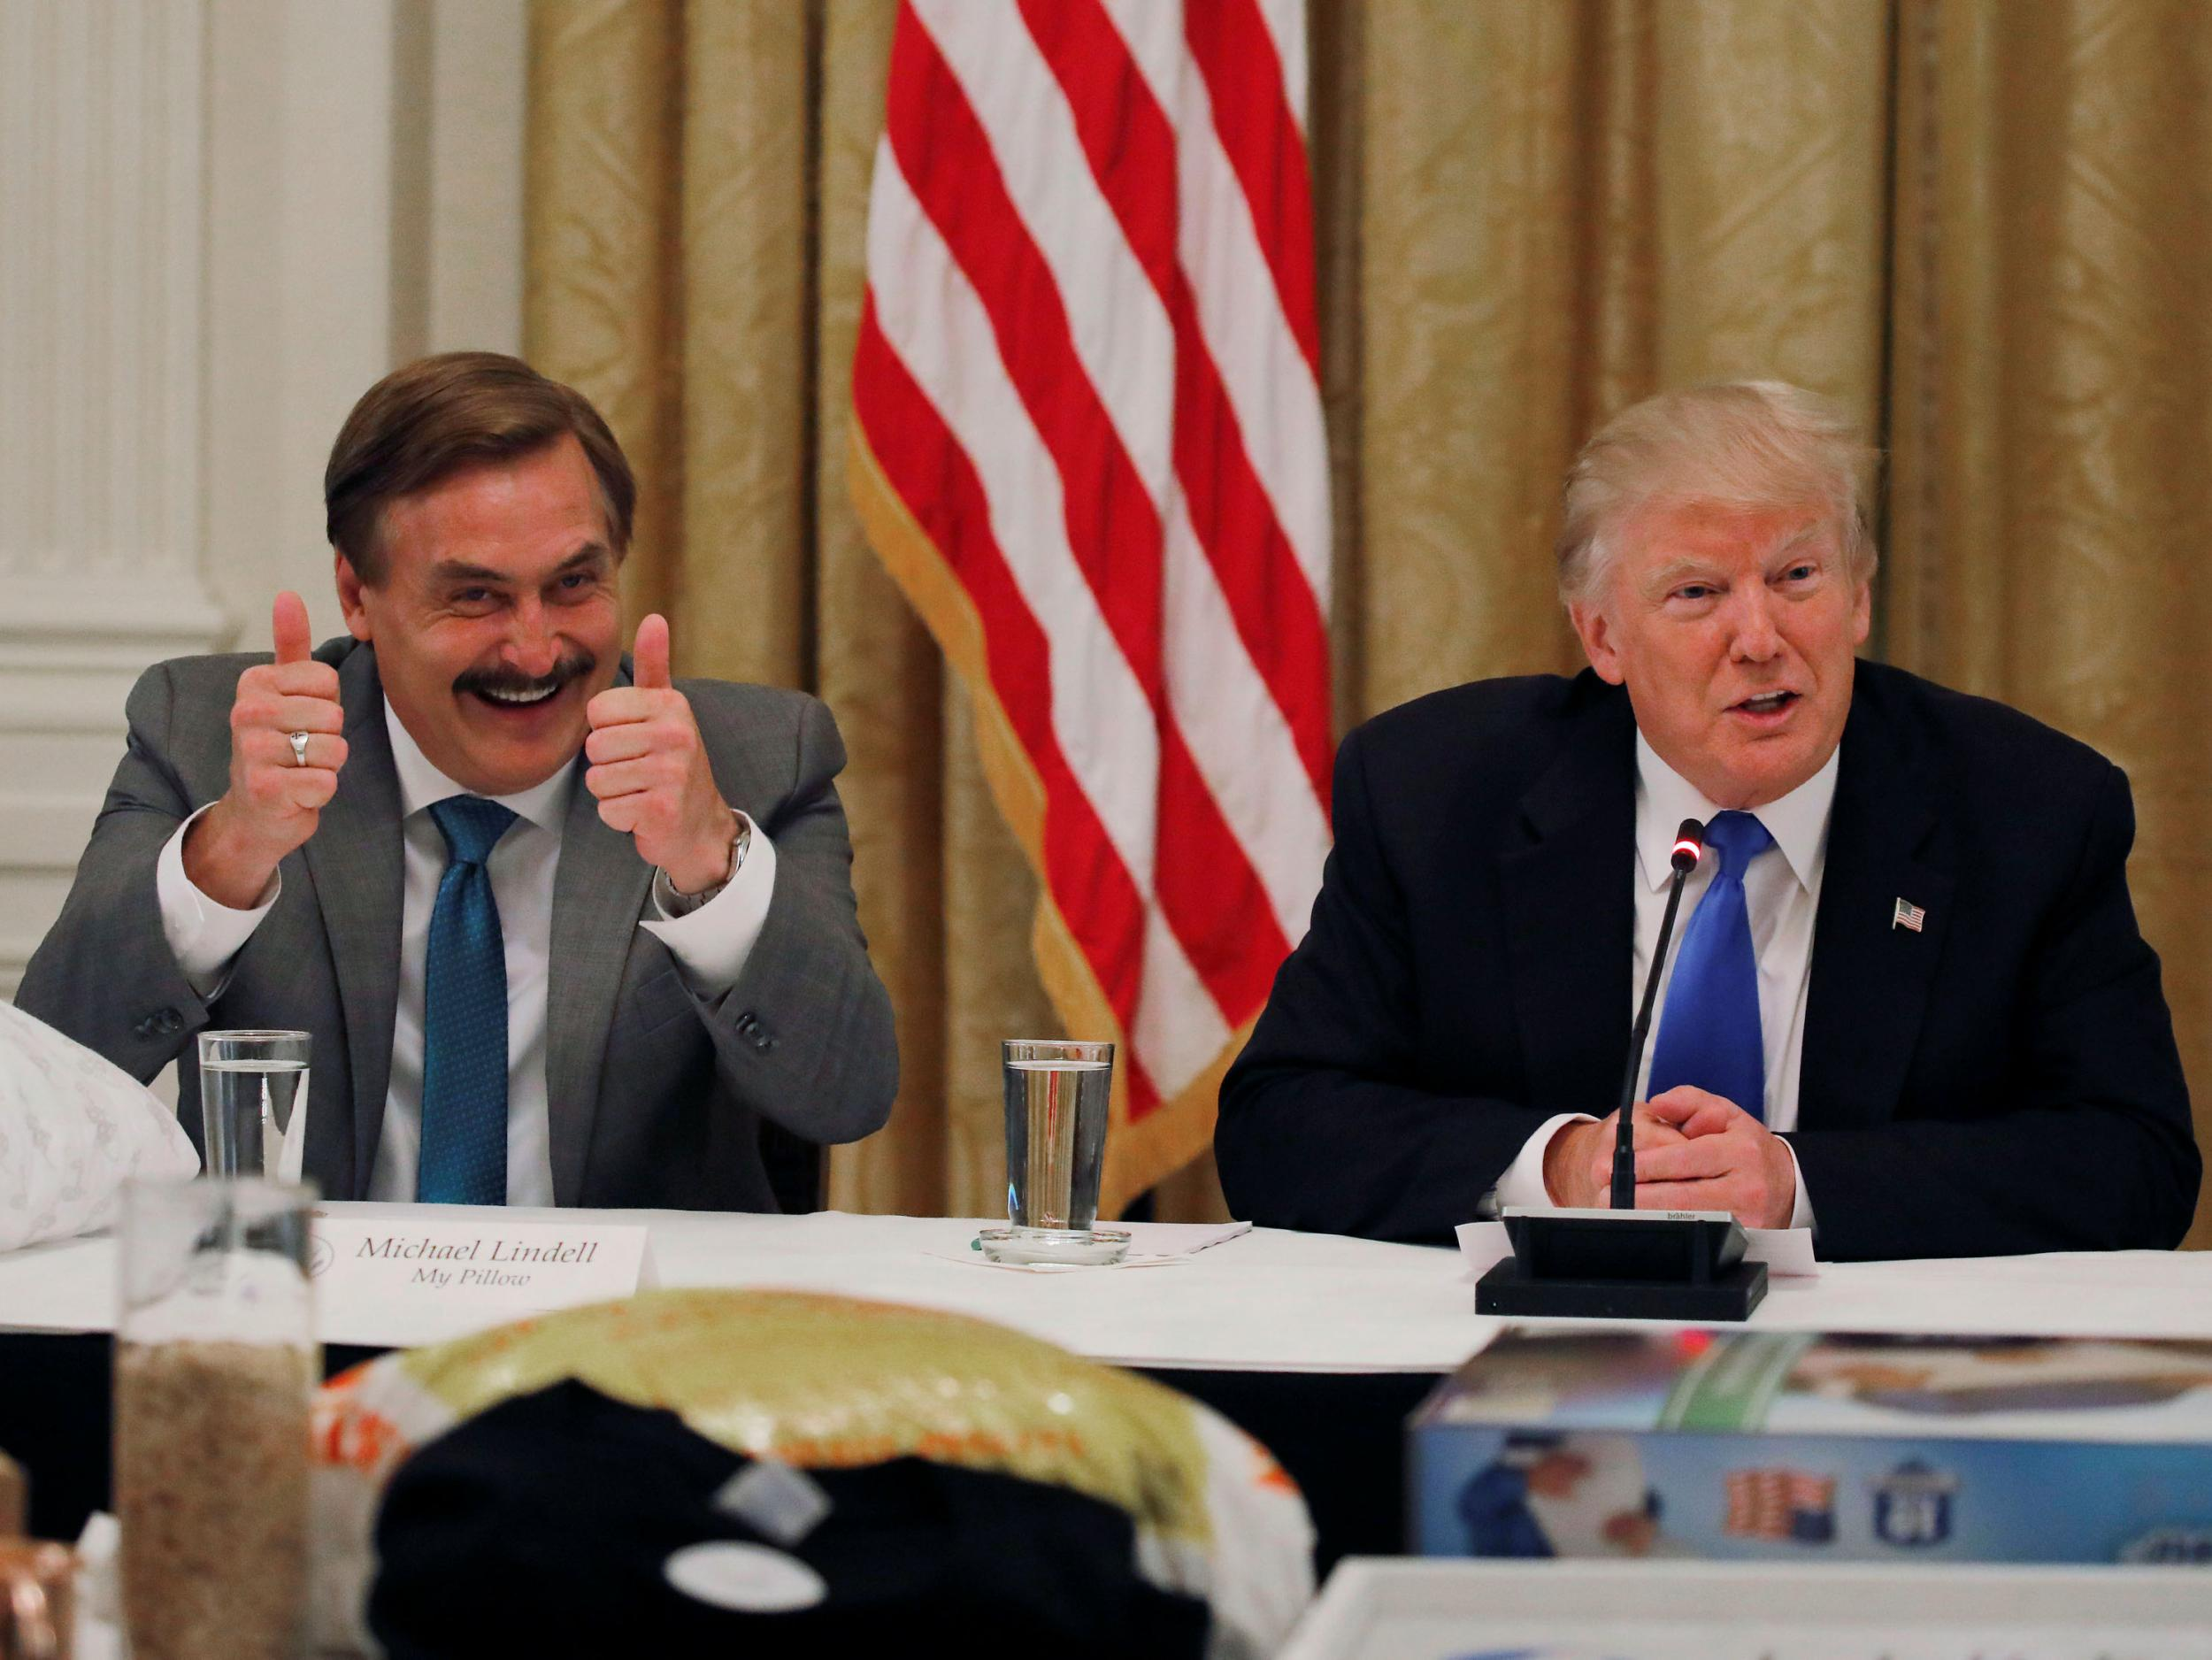 MyPillow CEO Mike Lindell brings notes to White House that suggest calling for 'martial law if necessary'